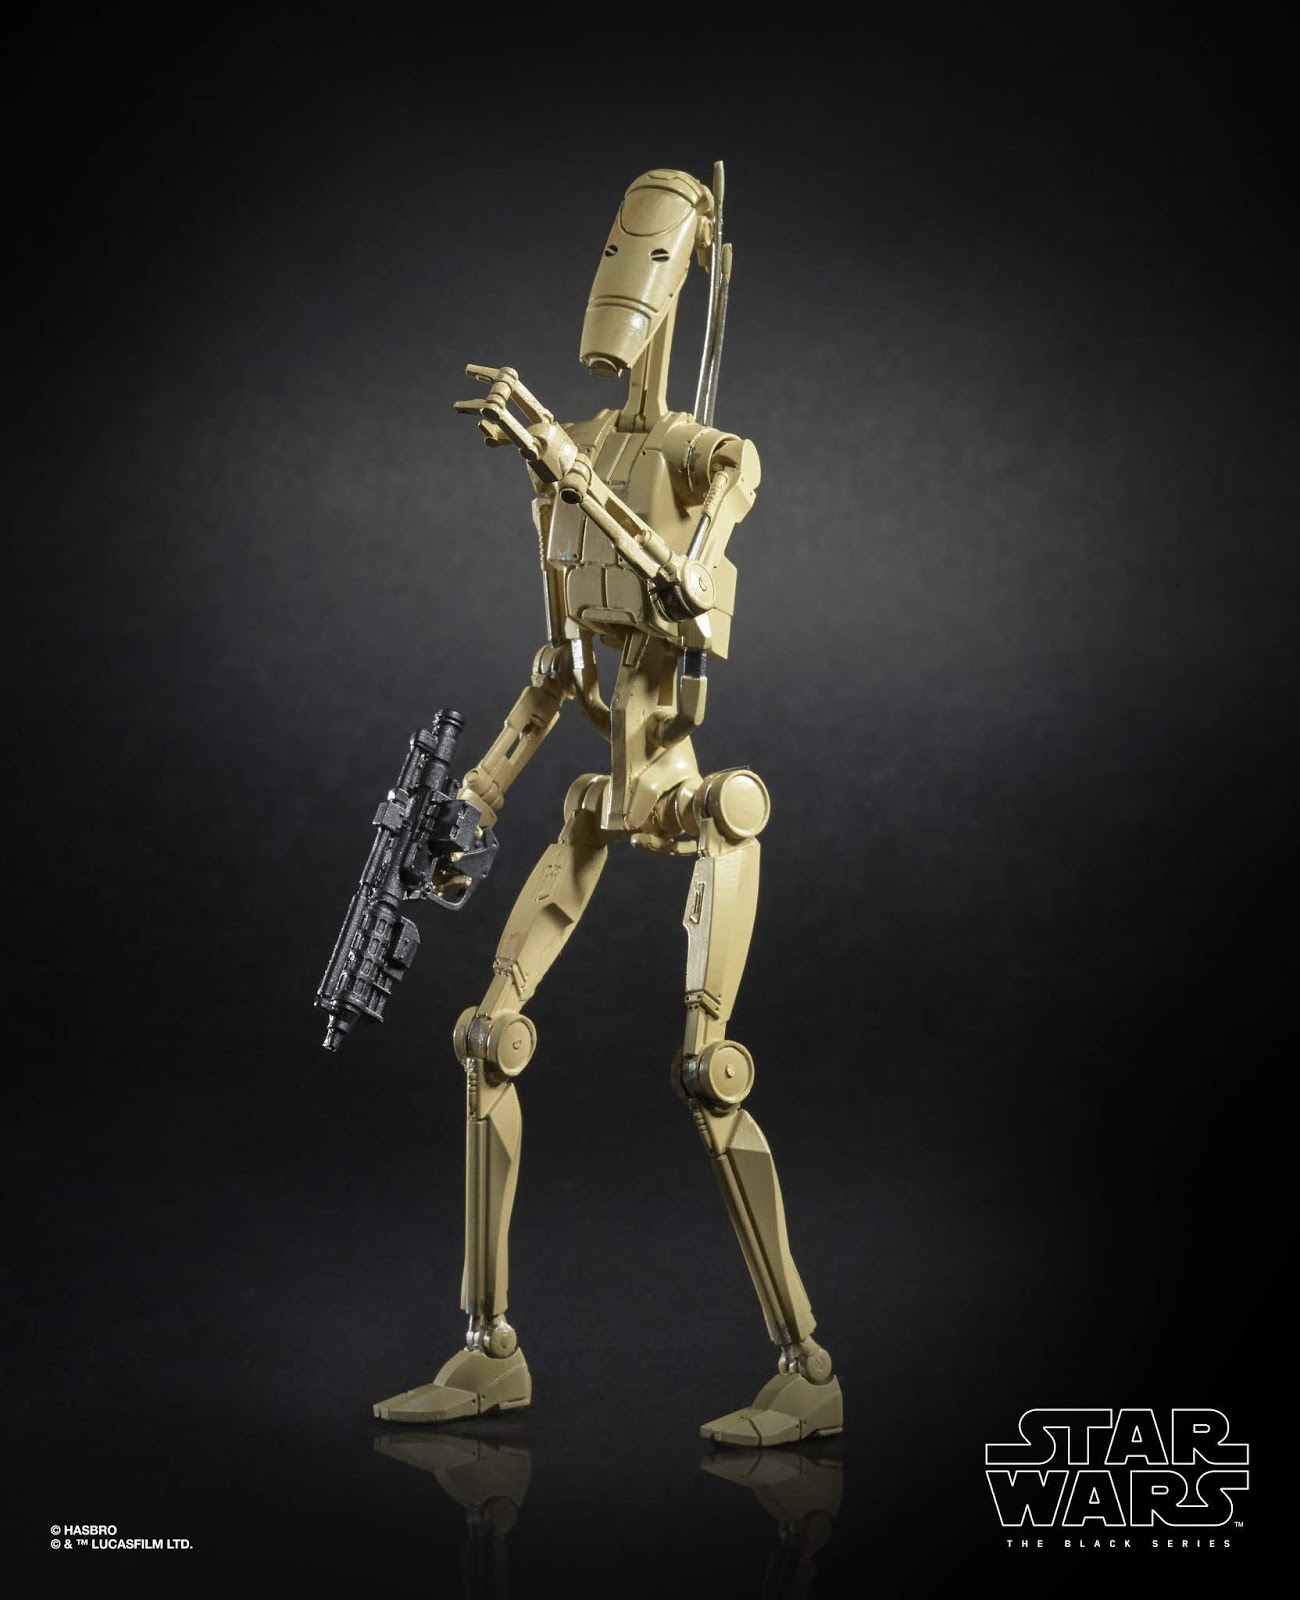 Star Wars: The Black Series 6-inch Battle Droid Figure   (HASBRO/Available: Spring 2019)